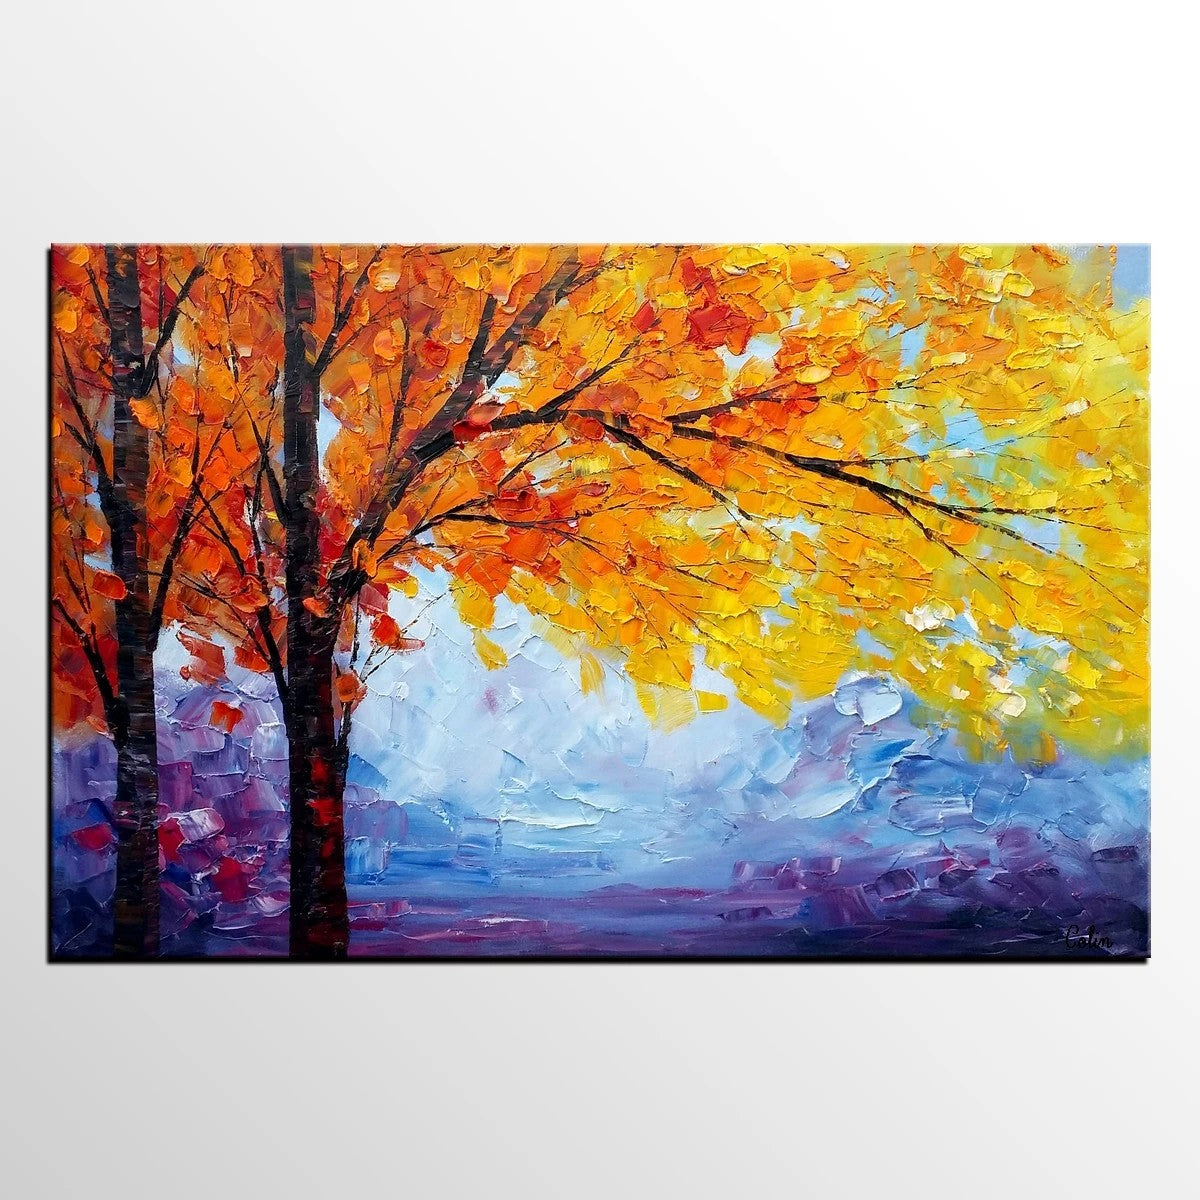 Autumn Tree Painting, Landscape Painting on Canvas, Abstract Landscape Painting, Living Room Canvas Painting, Palette Knife Paintings